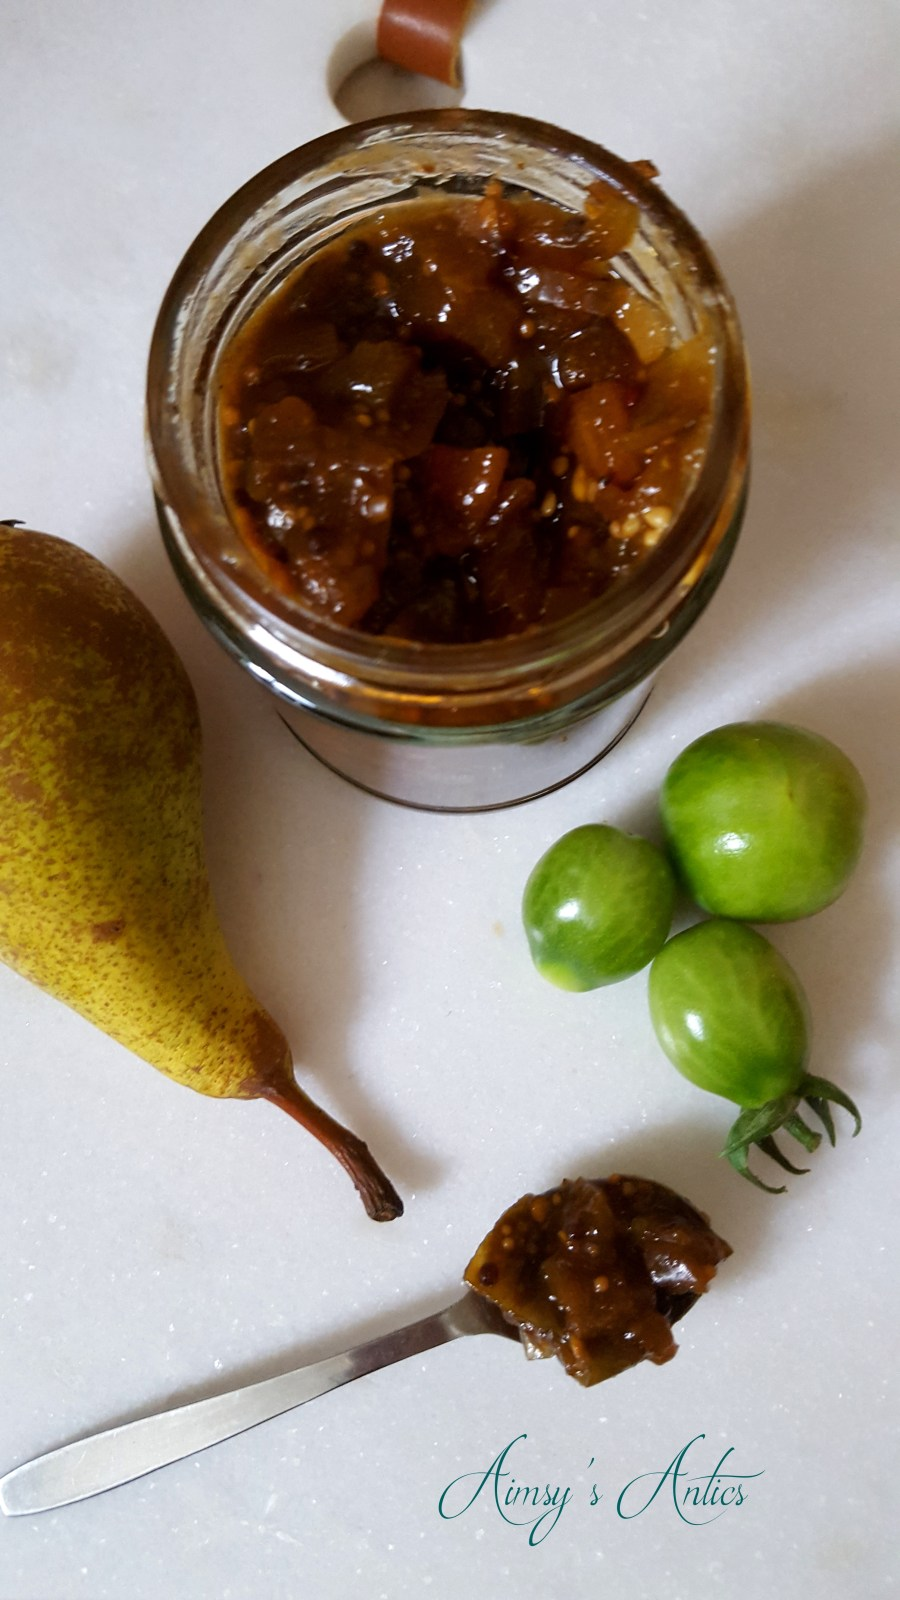 Image of tomato and pear chutney in a jar with a pear and green tomatoes around the jar. Also a teaspoon of chutney is in the shot